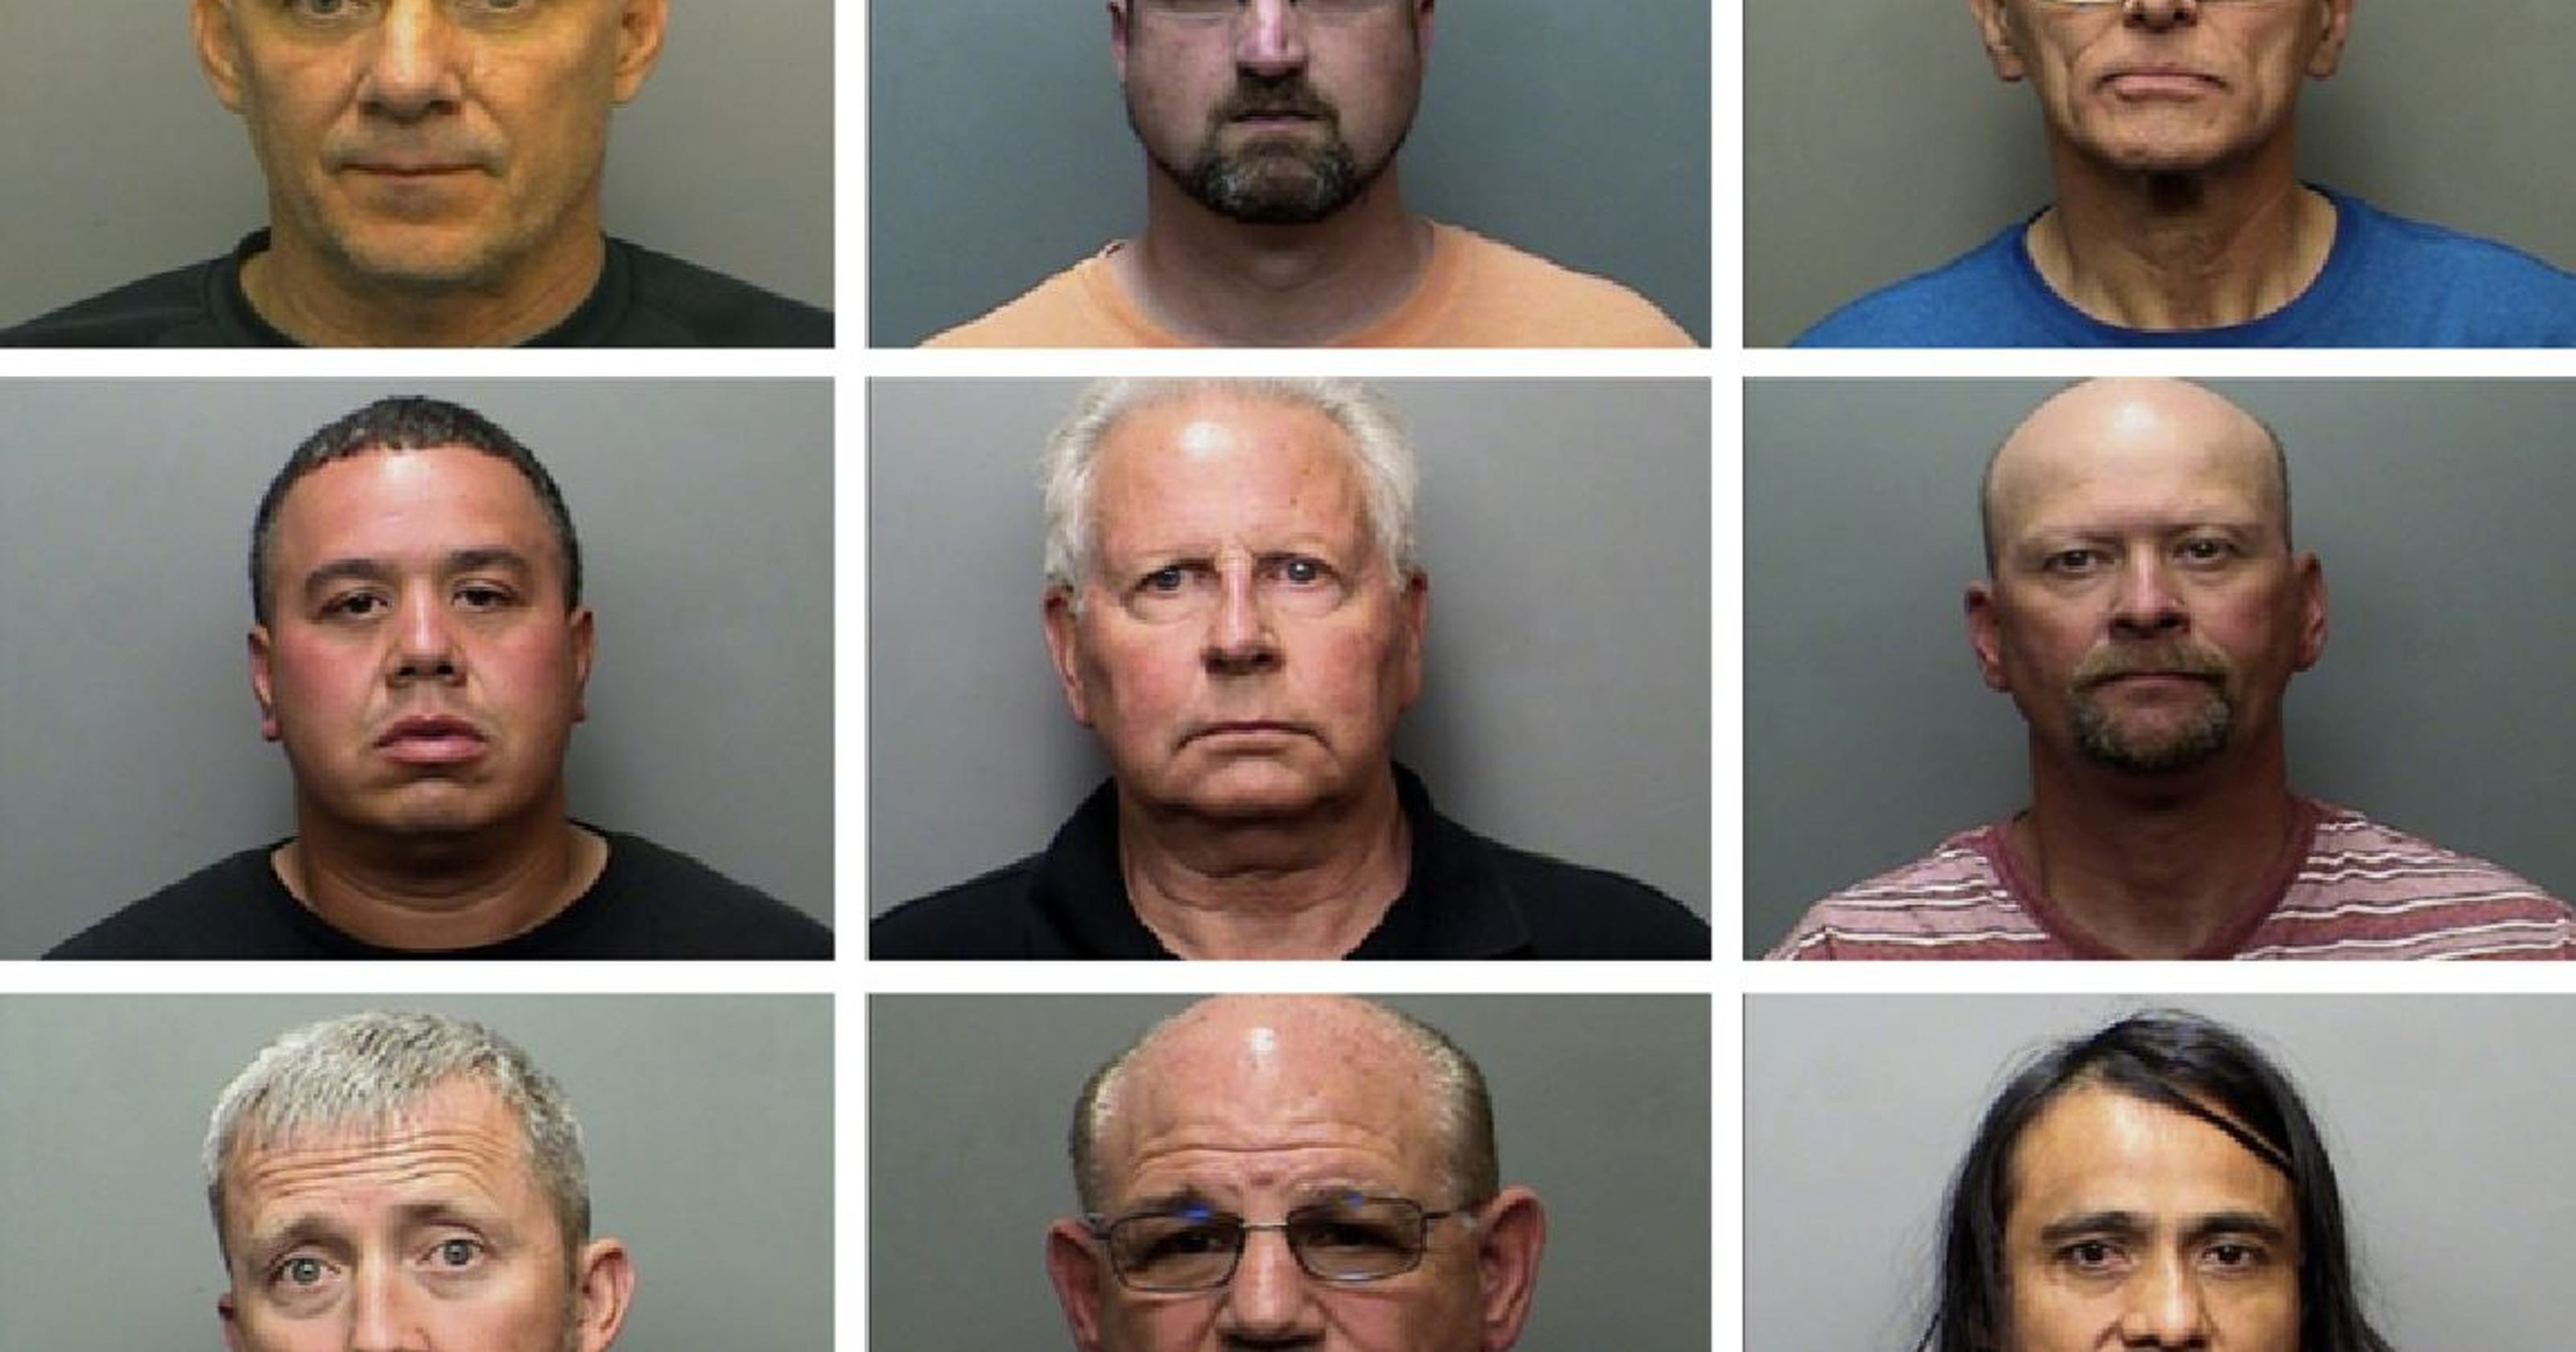 9 johns jailed in latest Fort Collins prostitution sting